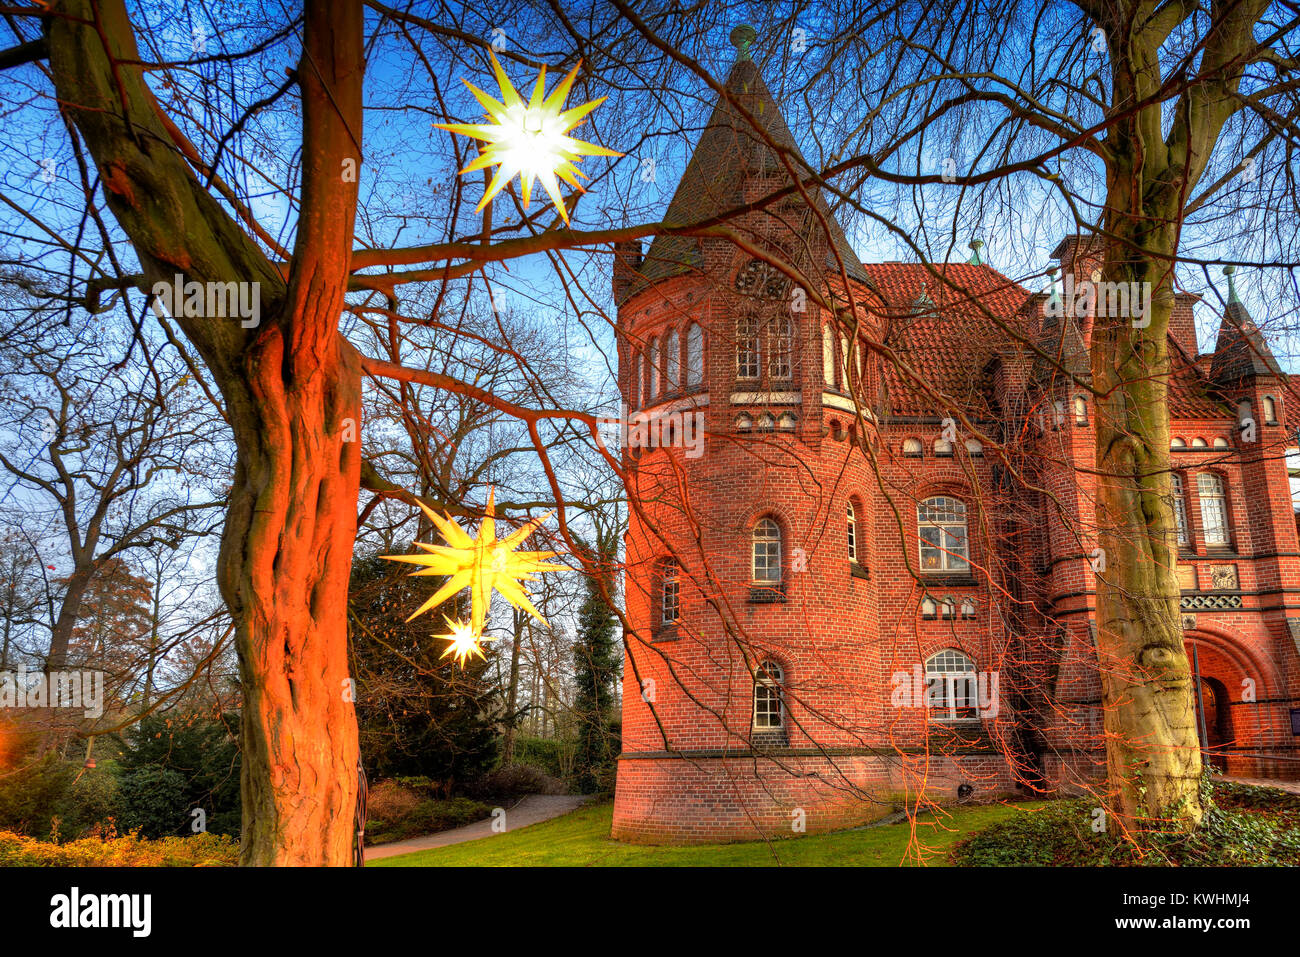 Christmas lighting on the Christmas fair in the castle in mountain village, Hamburg, Germany, Europe, Weihnachtsbeleuchtung - Stock Image